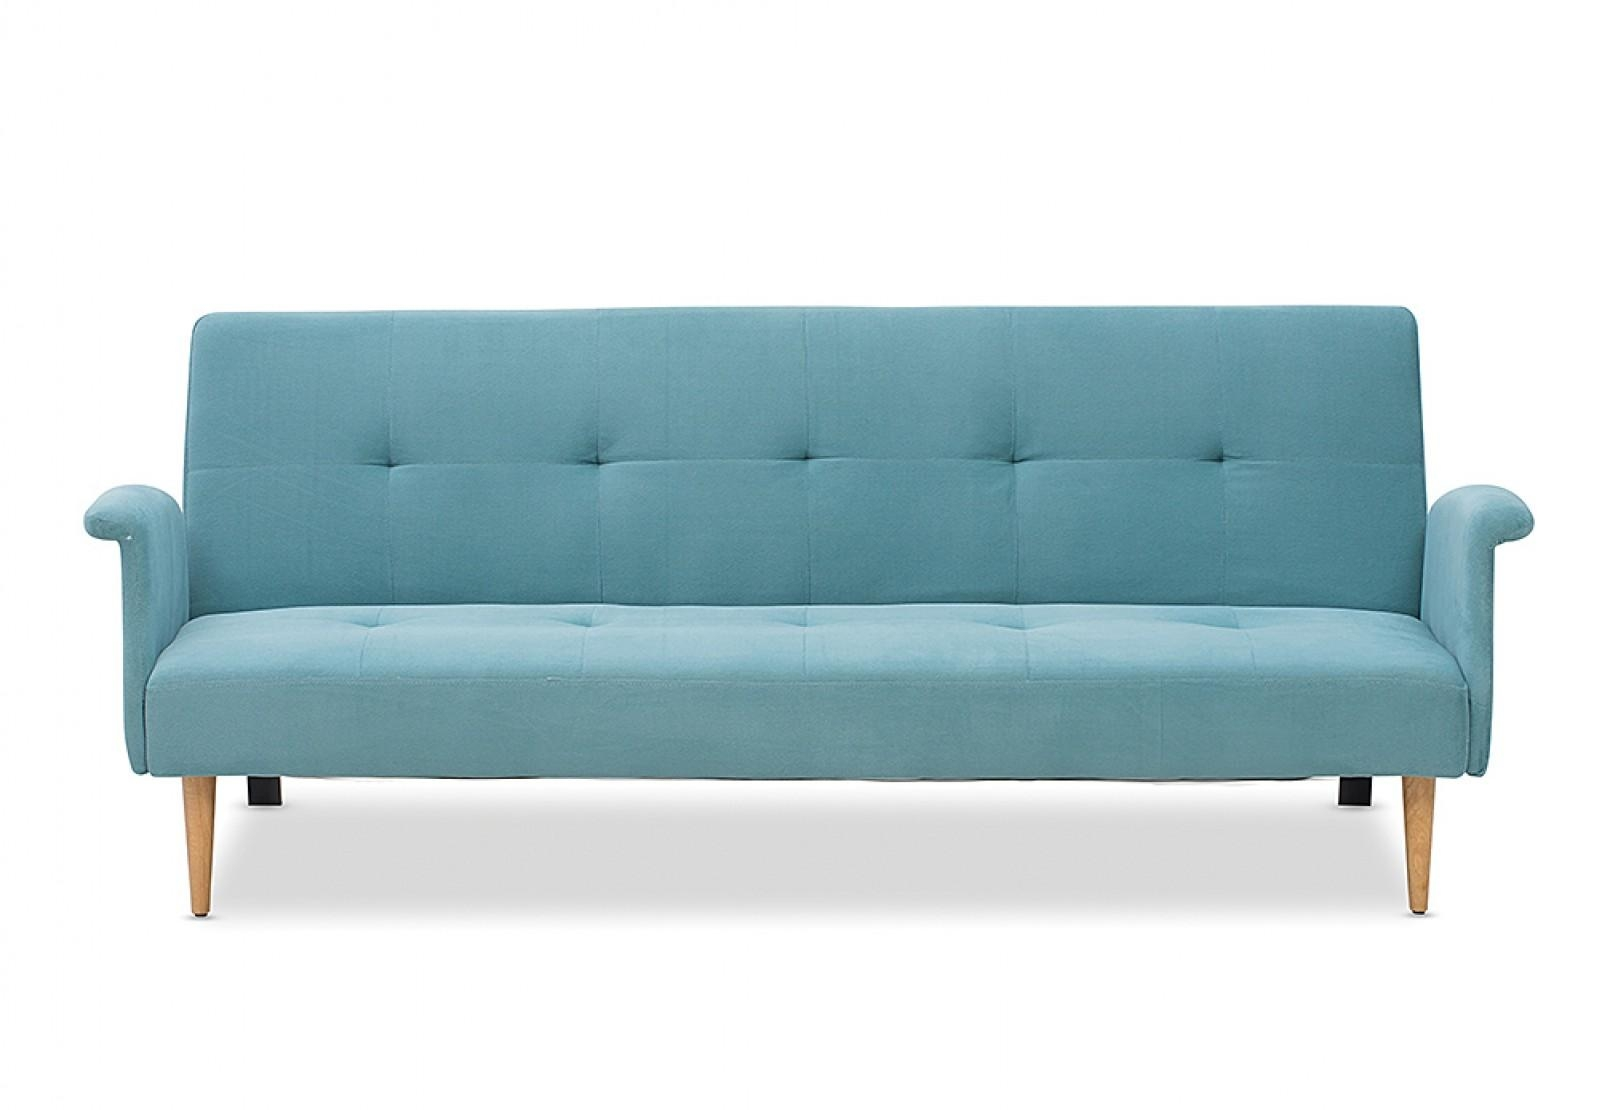 Sofa Beds | Super Amart With Regard To Clic Clac Sofa Beds (Image 17 of 20)